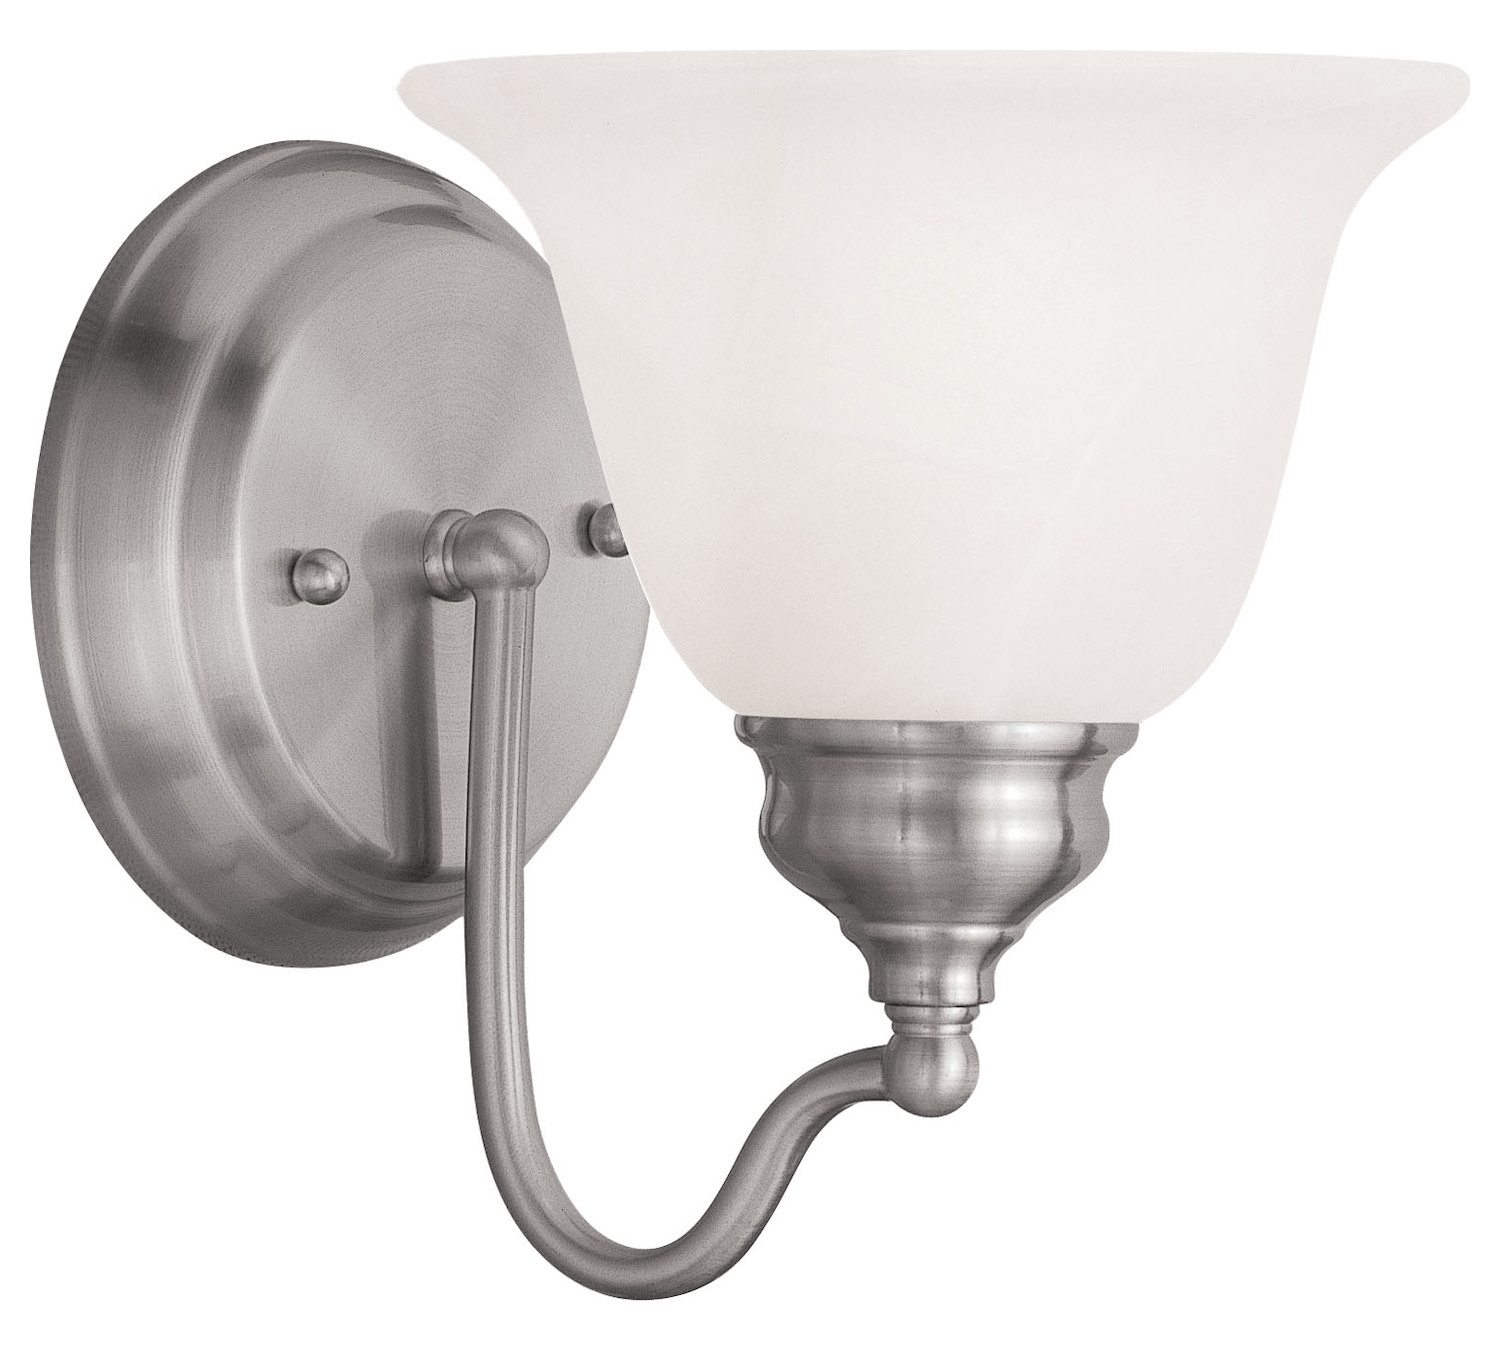 Livex Lighting Brushed Nickel Bathroom Sconce Brushed Nickel 1351 91 From Essex Collection